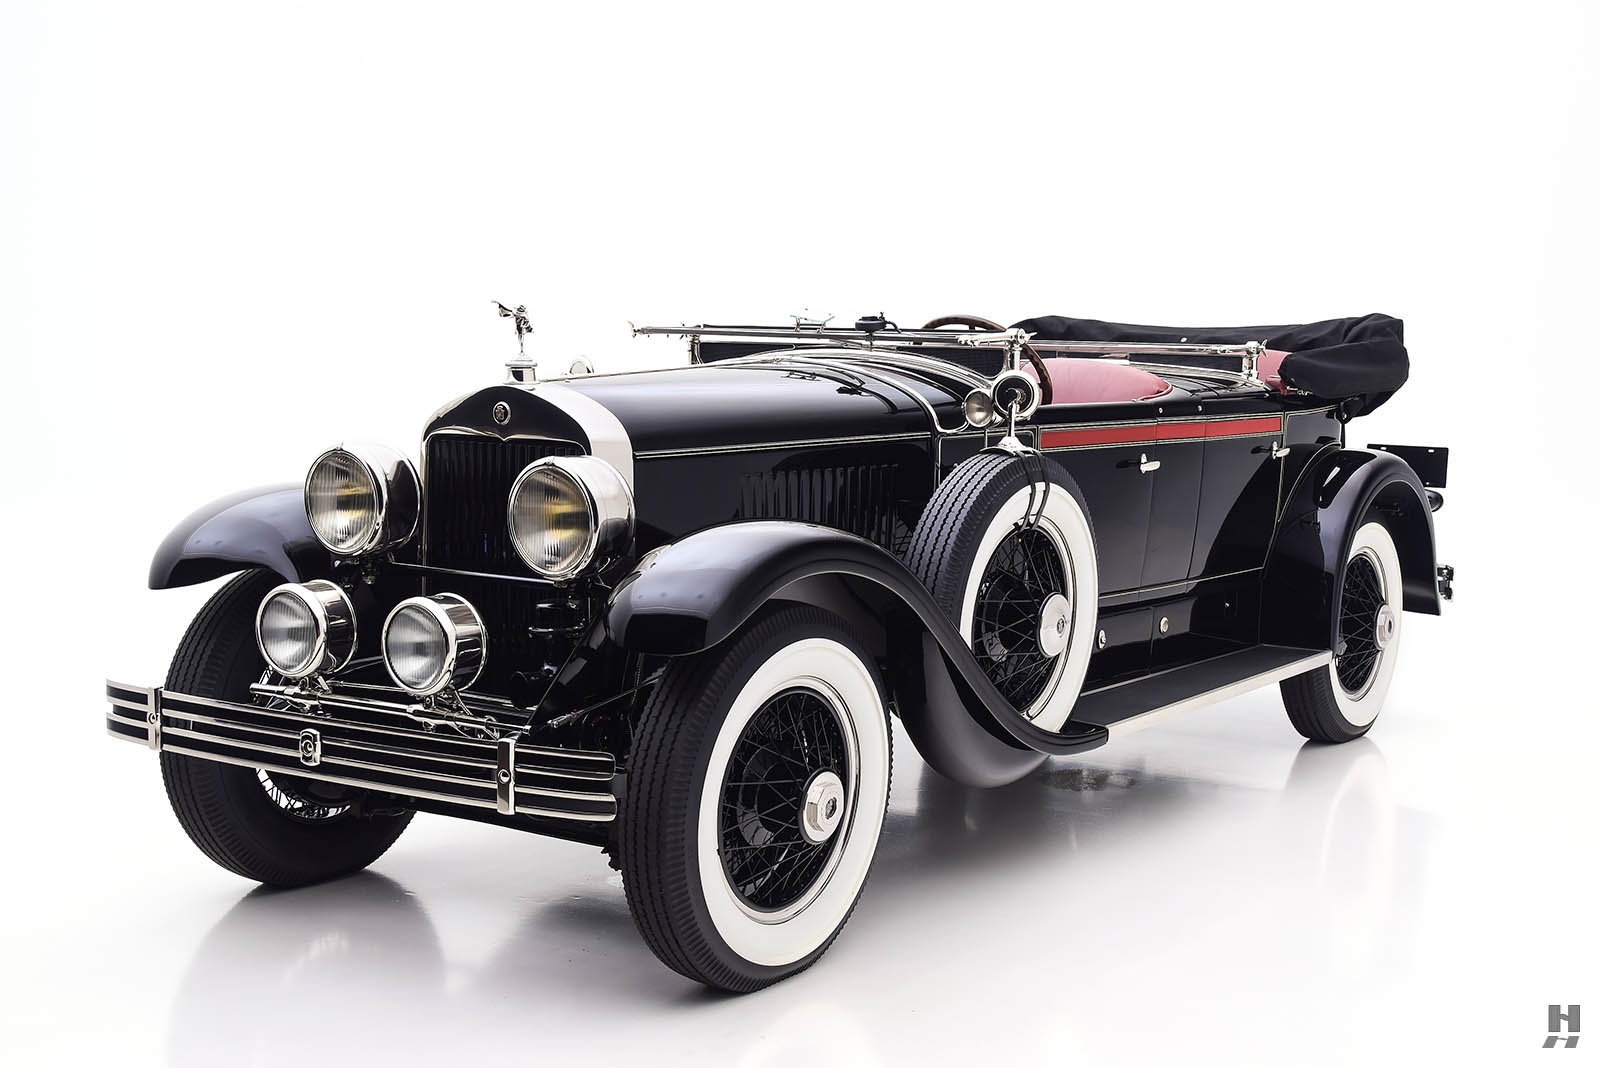 Classic Cadillac For Sale >> 1927 Cadillac Series 314 Double Cowl Sport Phaeton For Sale | Buy Classic Cars | Hyman LTD